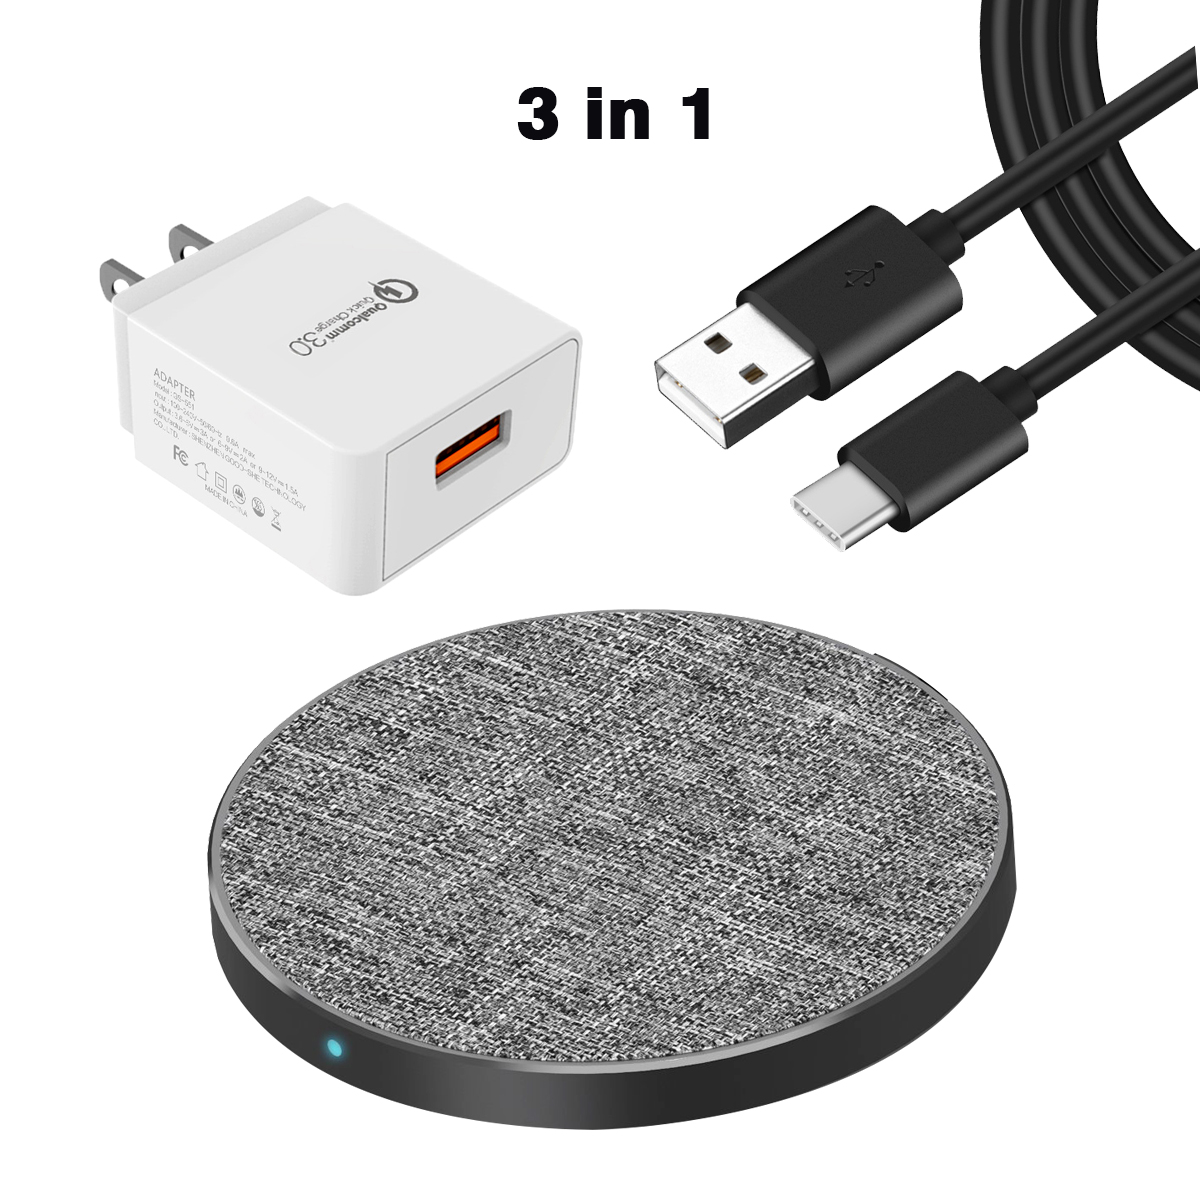 Feisman Fabric Wireless Charger Charging Pad, Qi Certified Fast Wireless Charger for iPhone X 8 Samsung Galaxy J5 J7 A8 S9 S8